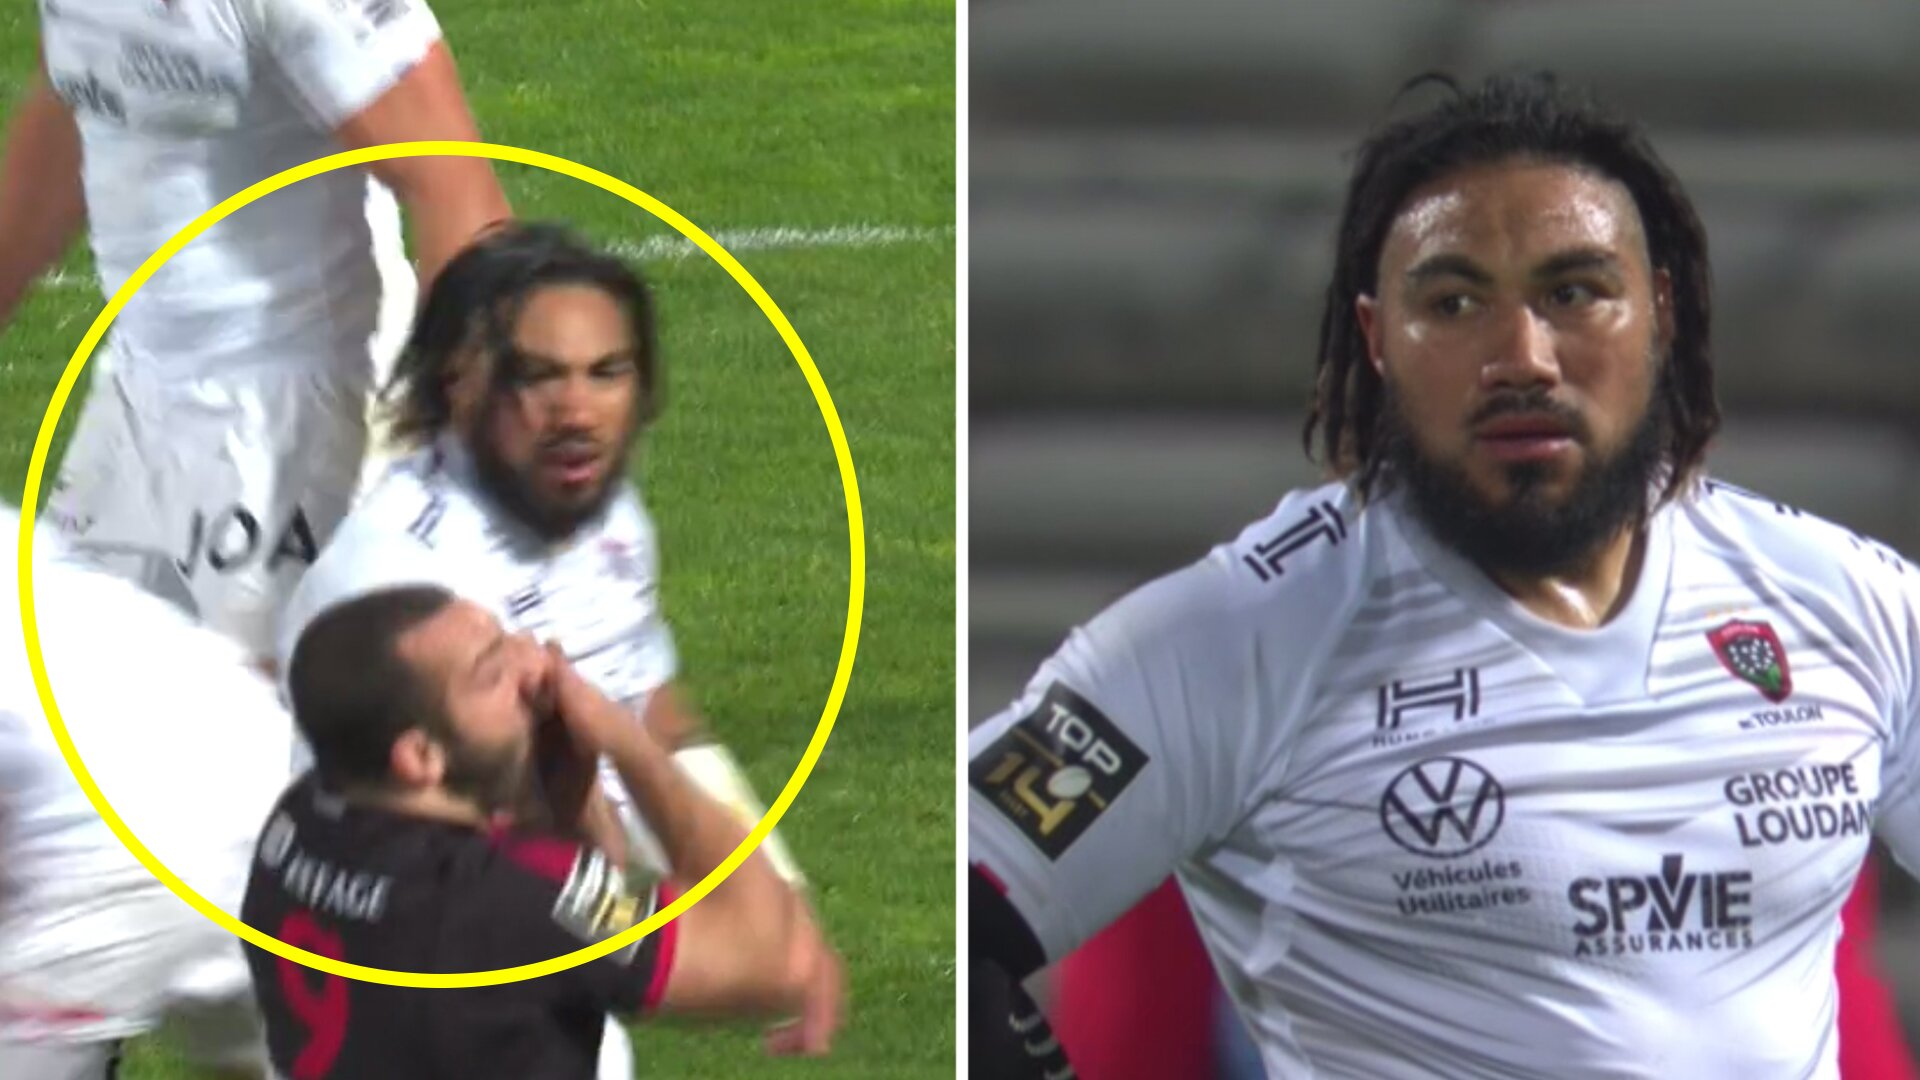 Ma'a Nonu loses control as he hits player in the face in Top 14